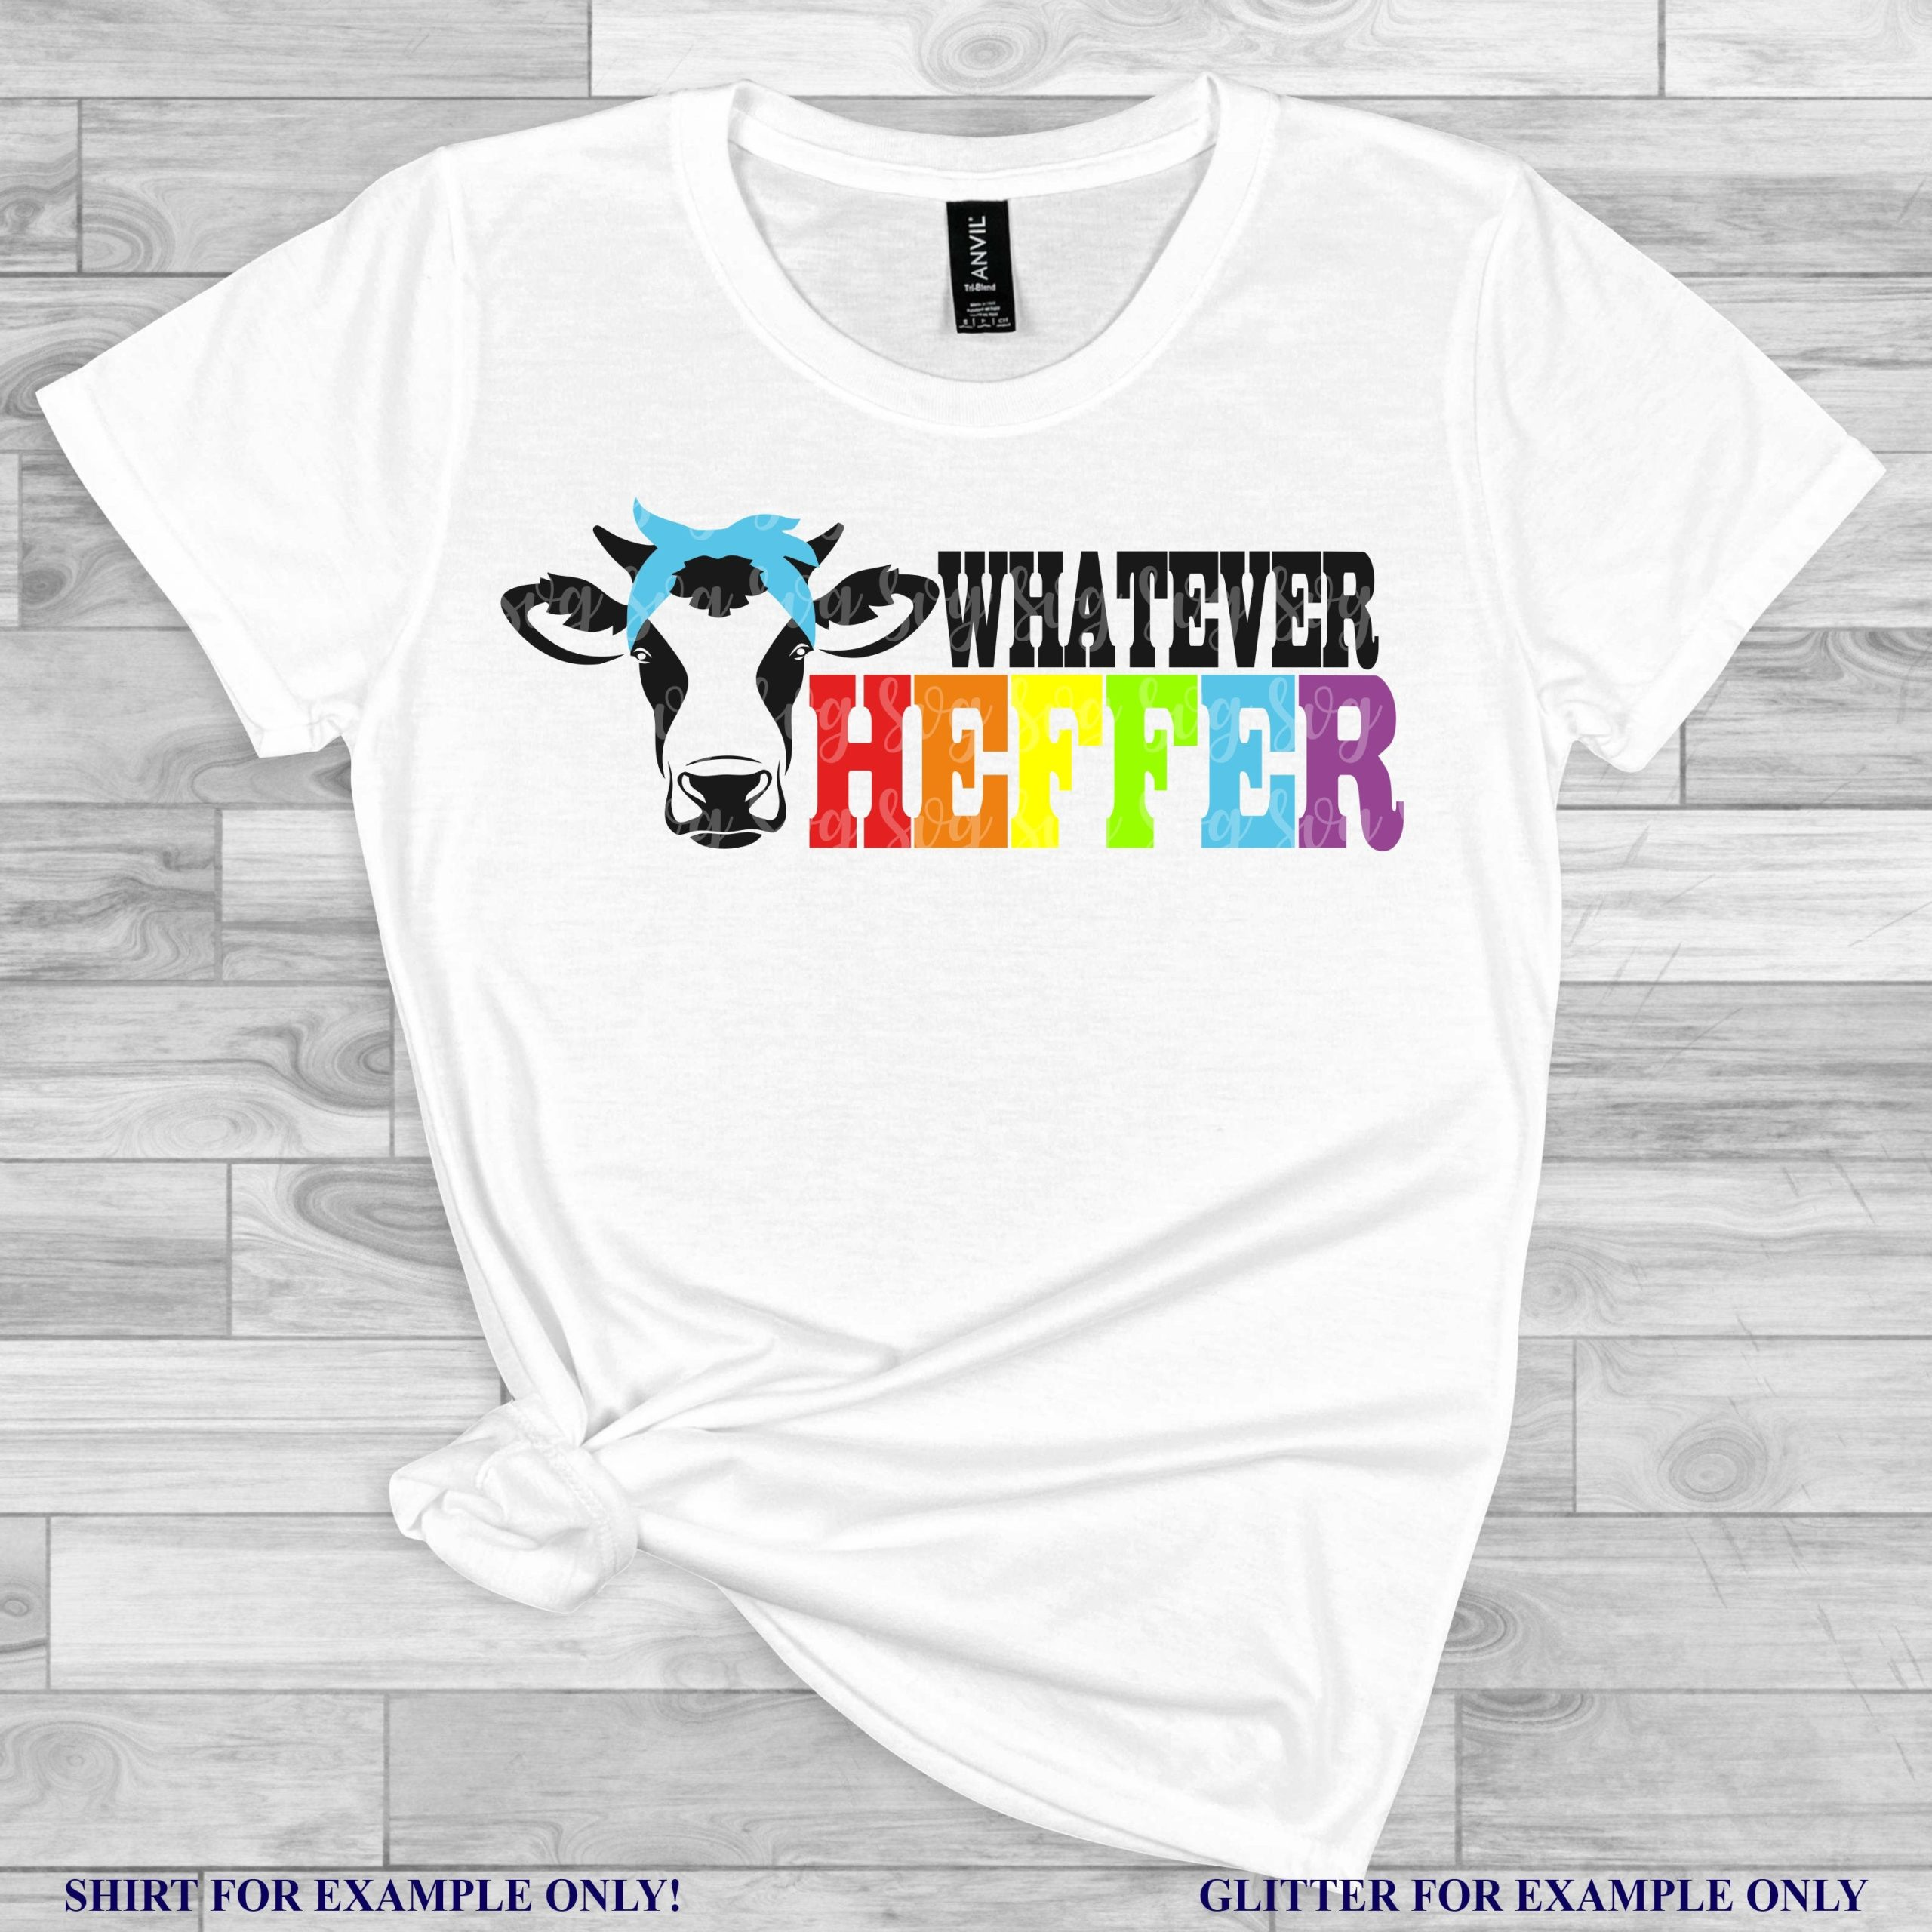 Whatever-heffer-svg-heffer-svg-whatever-svg-cow-svg-farm-svg-tshirt-svg-mom-svg-funny-quote-svg-svg-for-cricut-silhouette-cut-file-5ef78eca